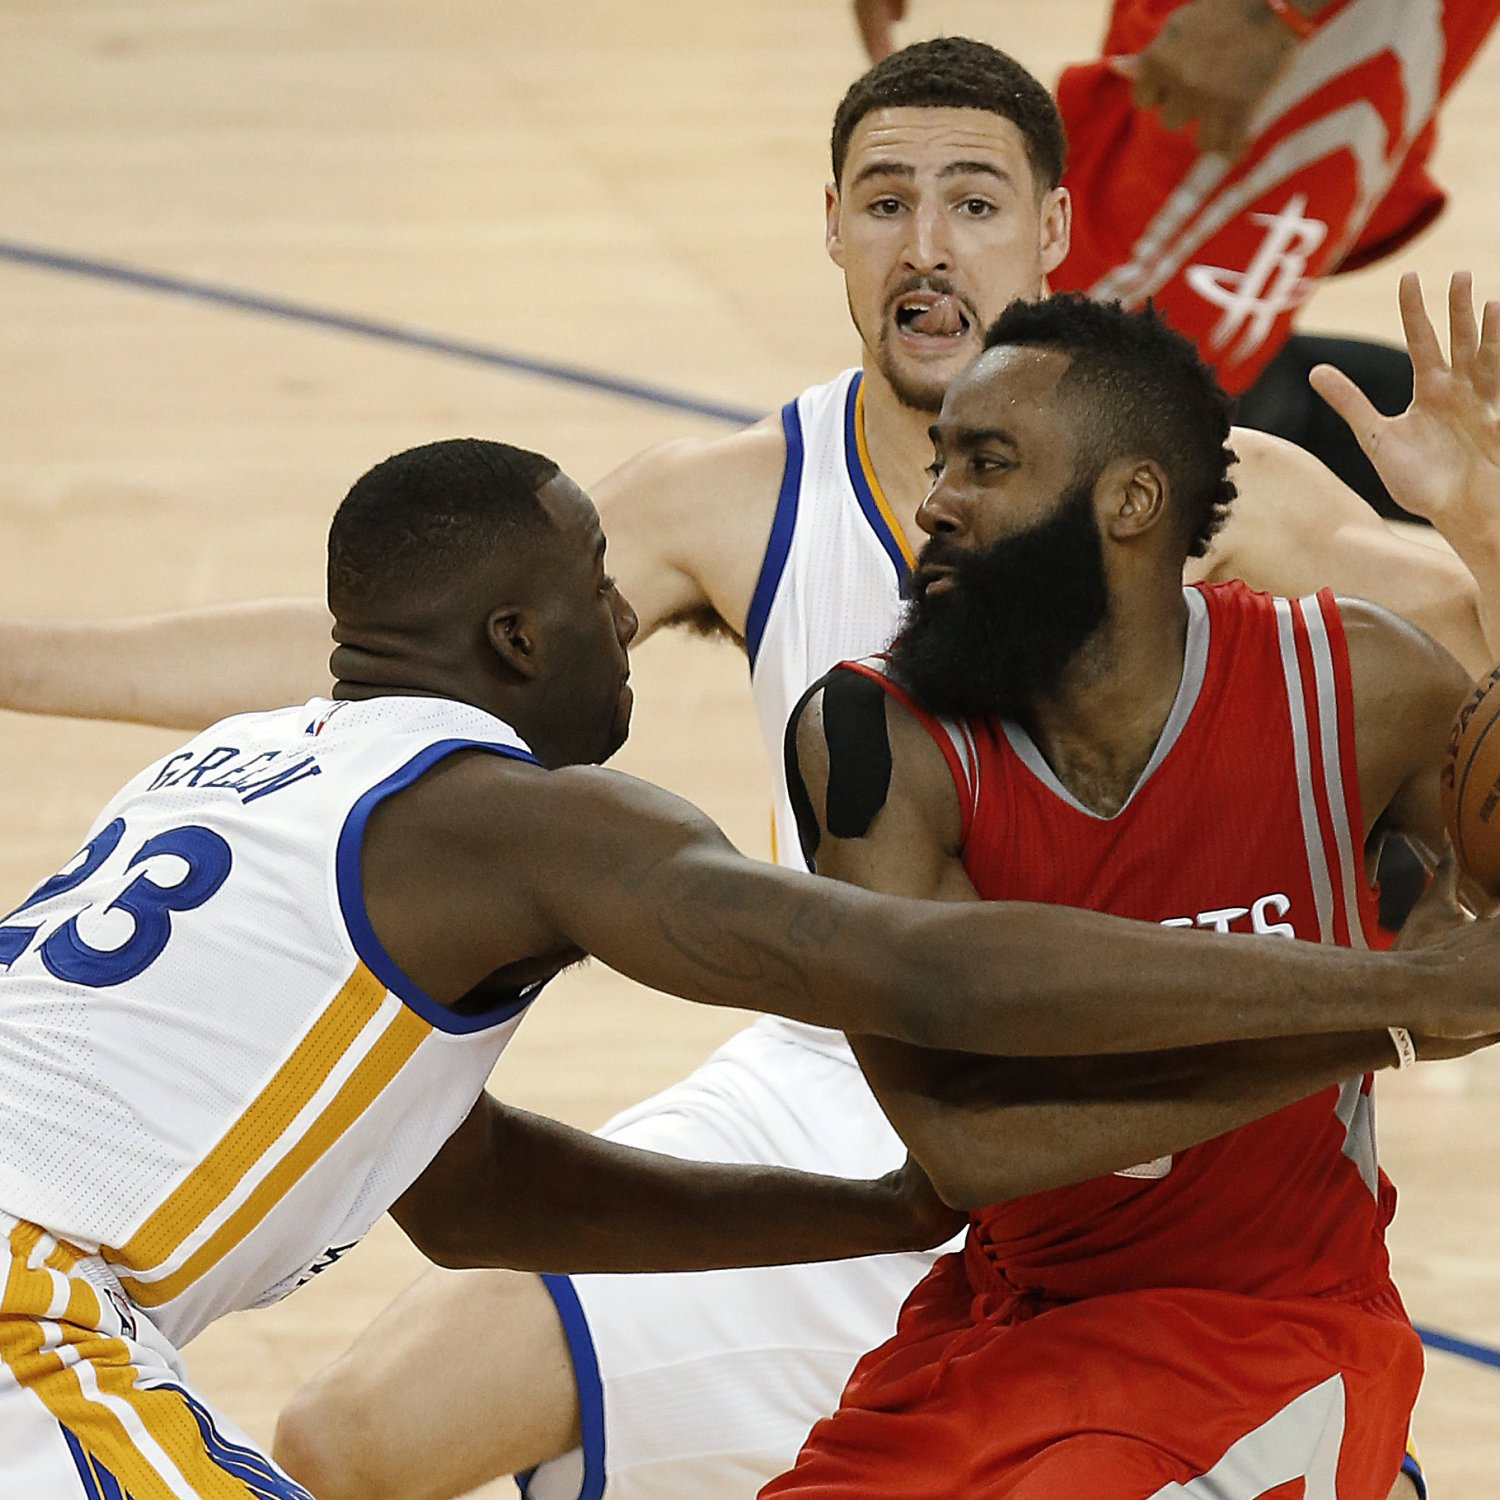 Rockets Vs Warriors Game 7 Where: Warriors Vs. Rockets: Analysis, Predictions For Western